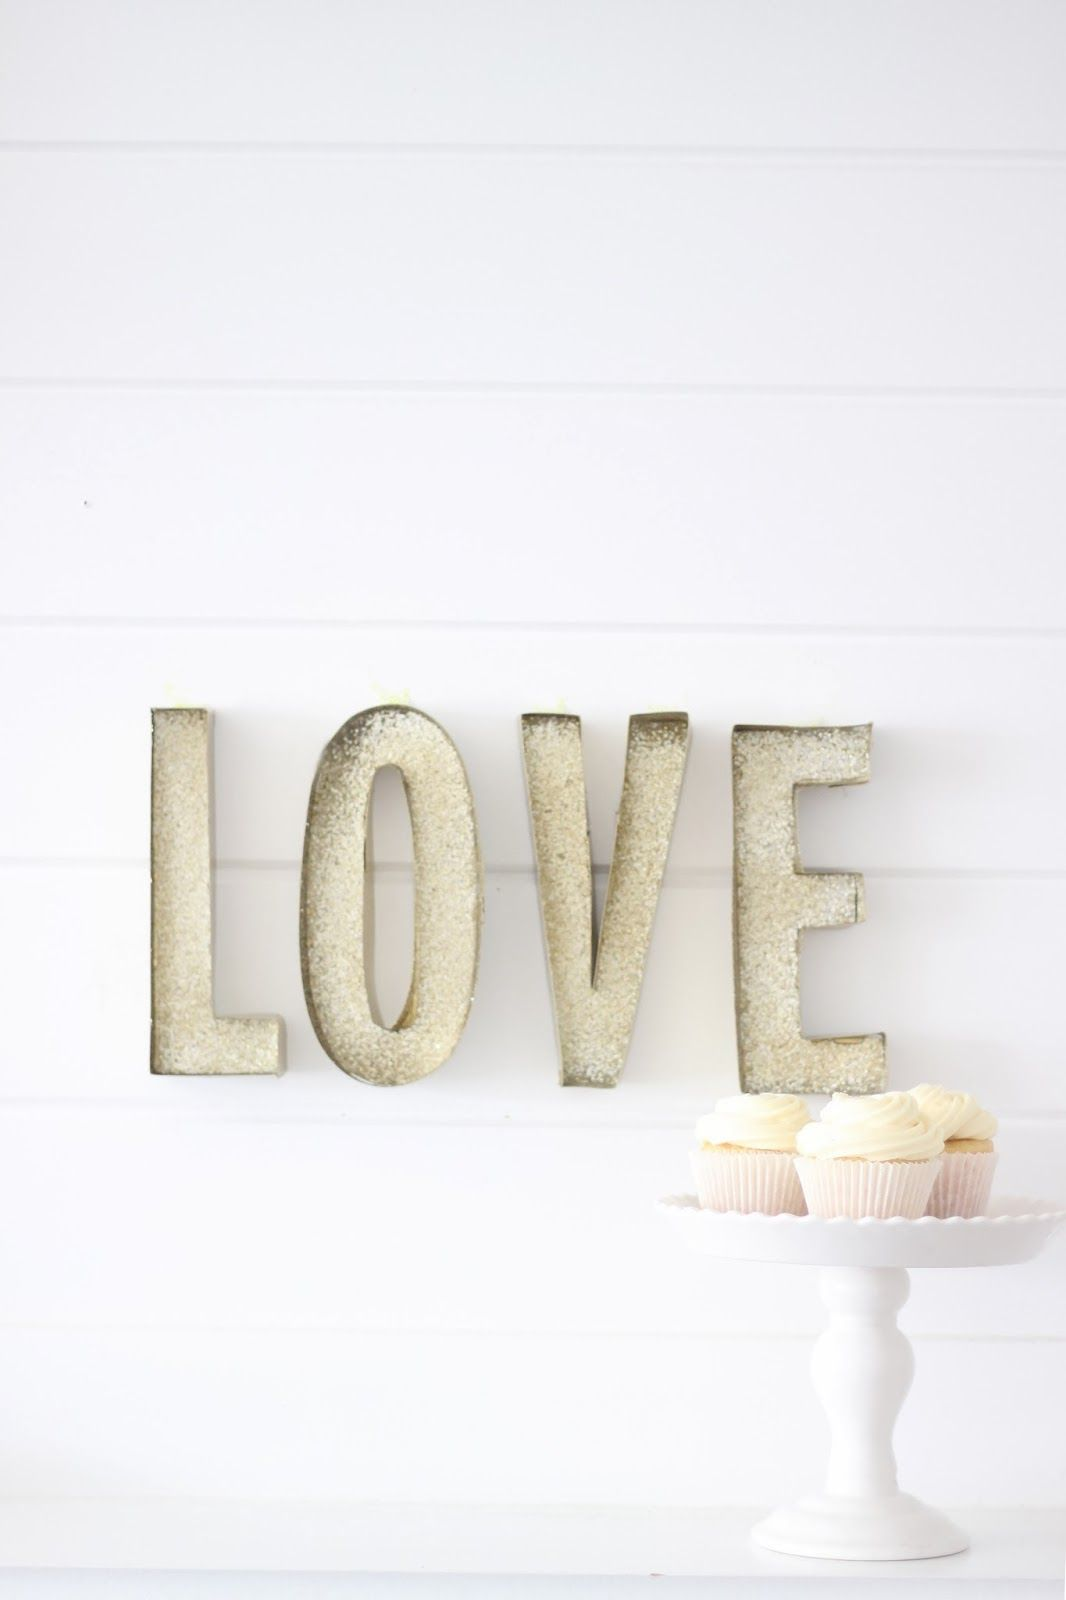 DIY tutorial on Glitter Marquee paper letters. Easy to make & cute for a party!